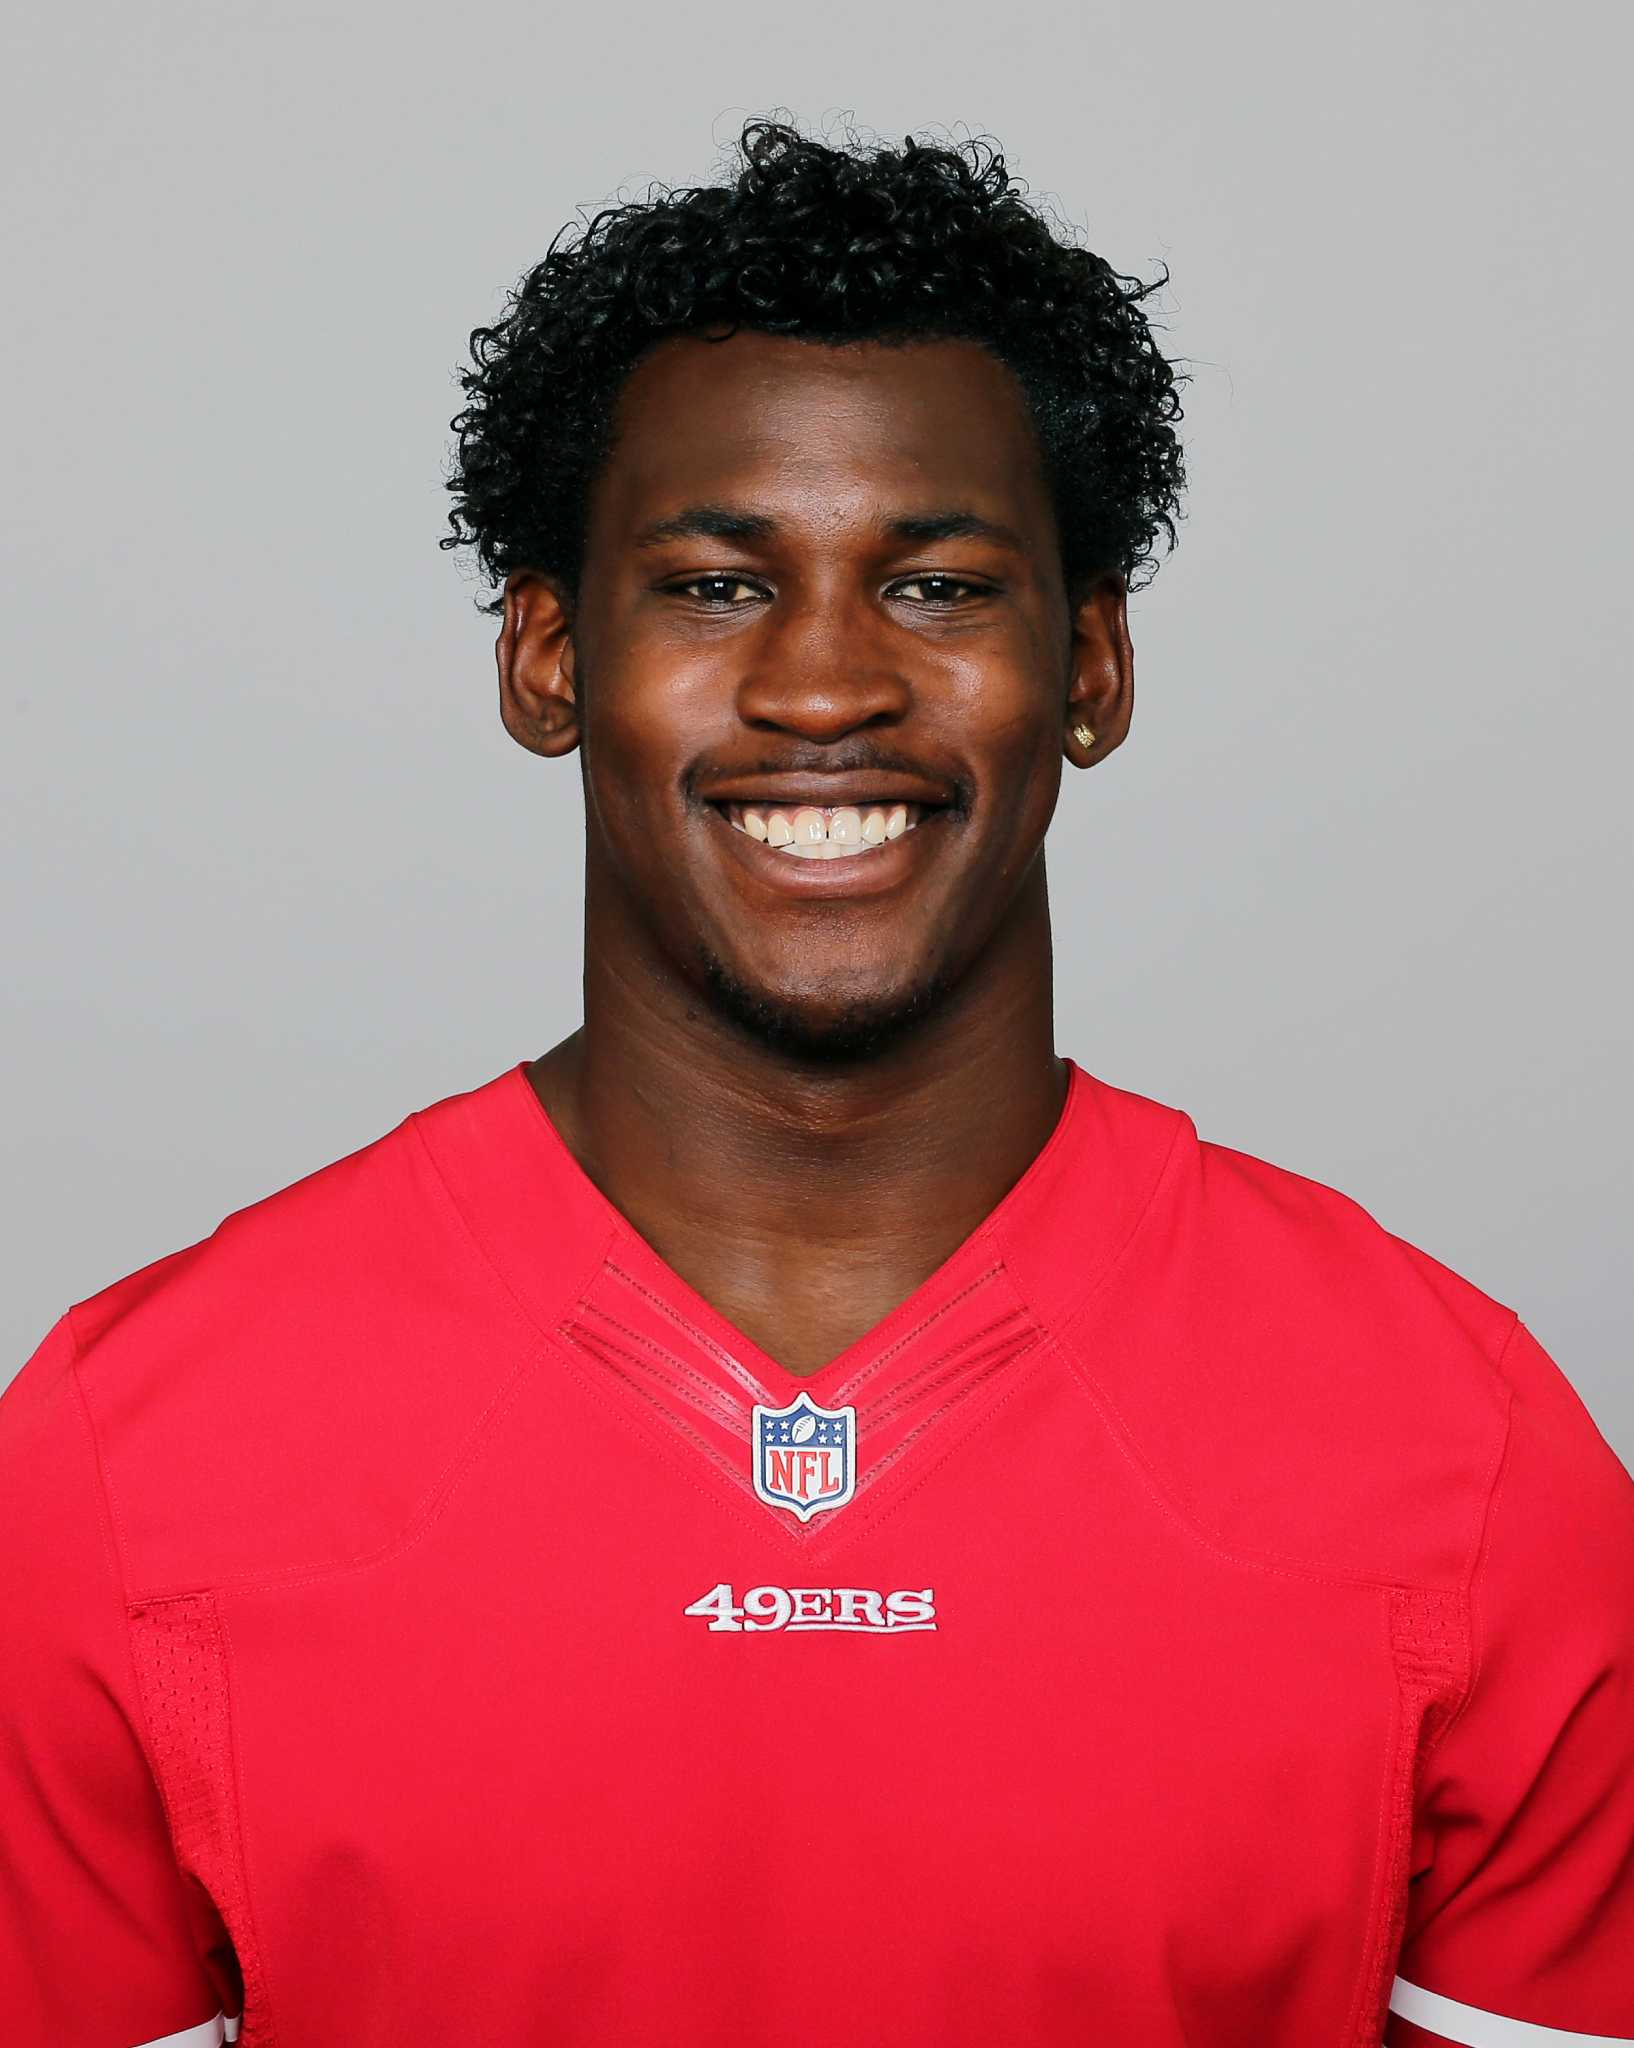 Around sports: 49ers' Smith gets probation in weapons case